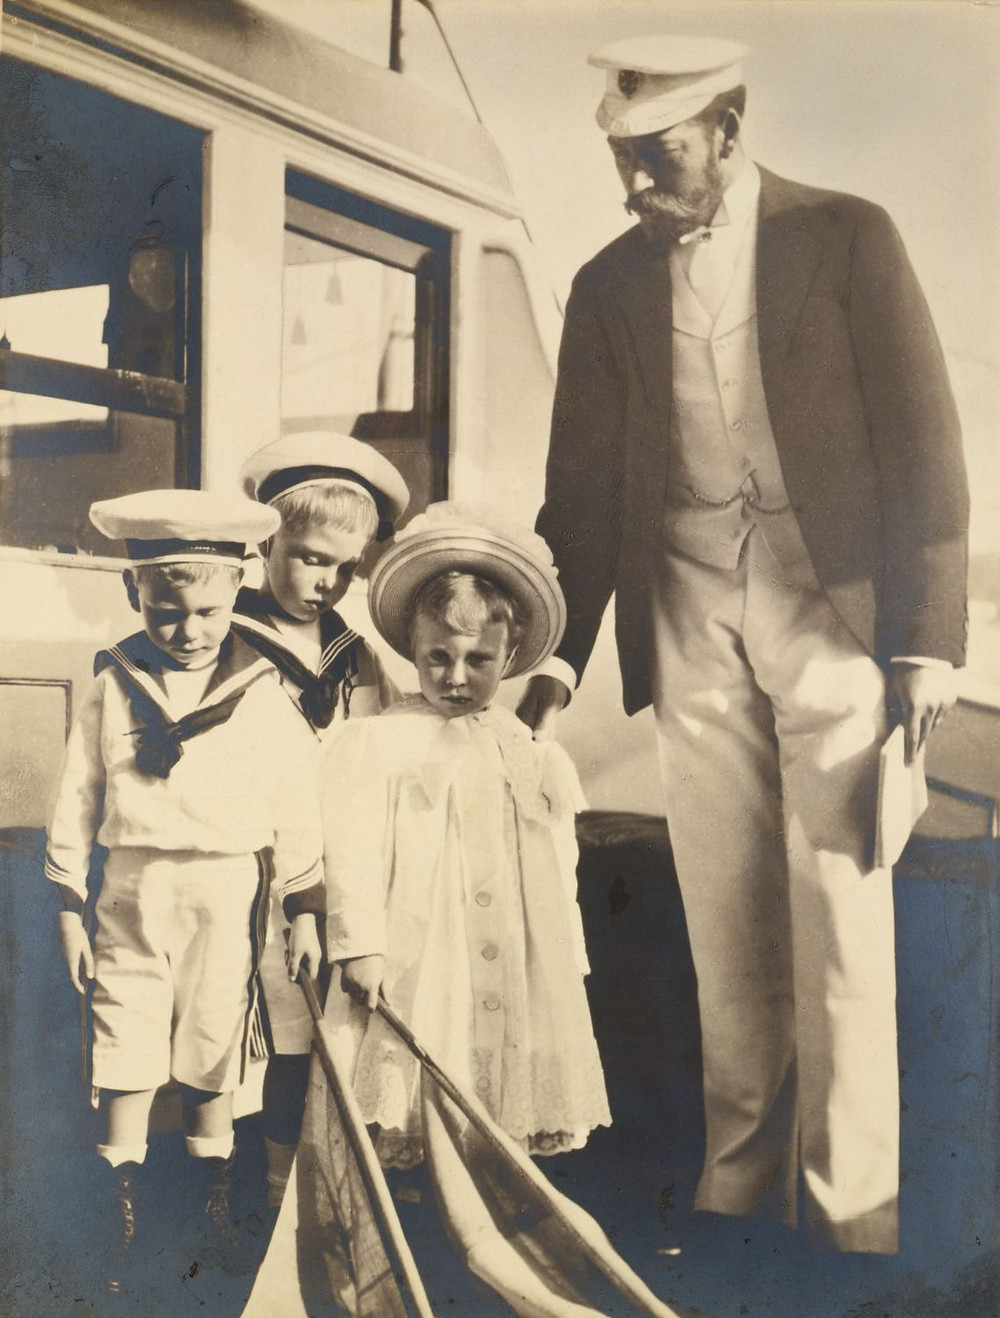 George, Duke of York (later George V), & his children Prince Albert (later George VI), Prince Edward (later Edward VIII) & Princess Mary, on board HMY 'Osborne' Aug 1899. Royal Collection Trust/(c) Her Majesty Queen Elizabeth II 2019